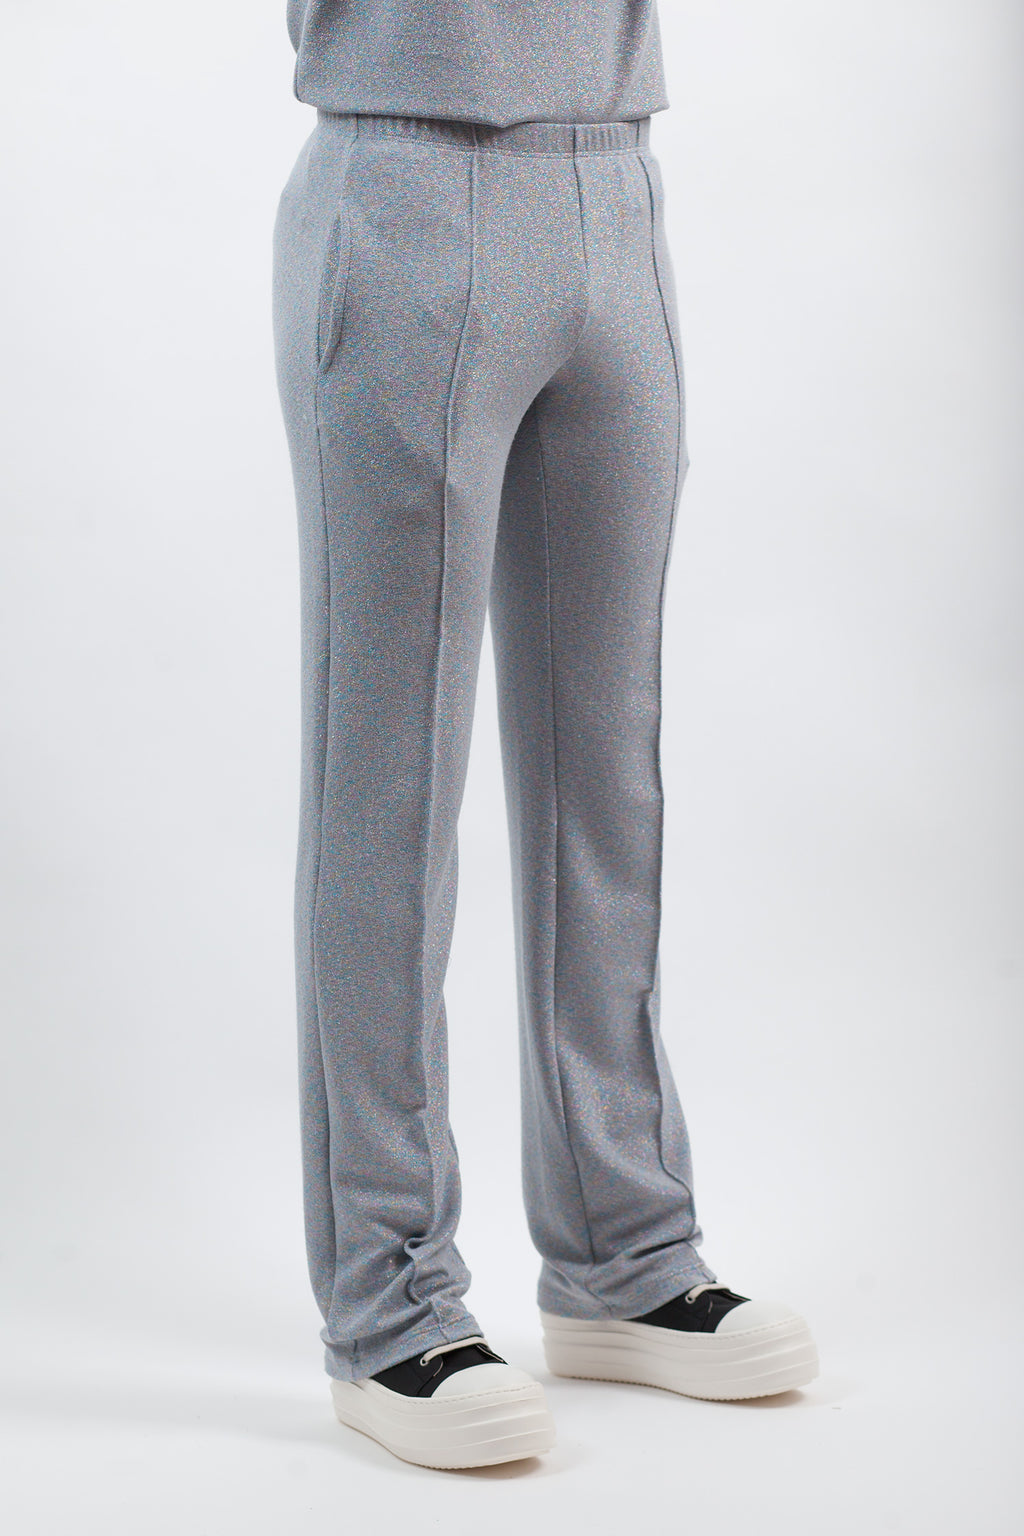 ROSS Lounge Pants